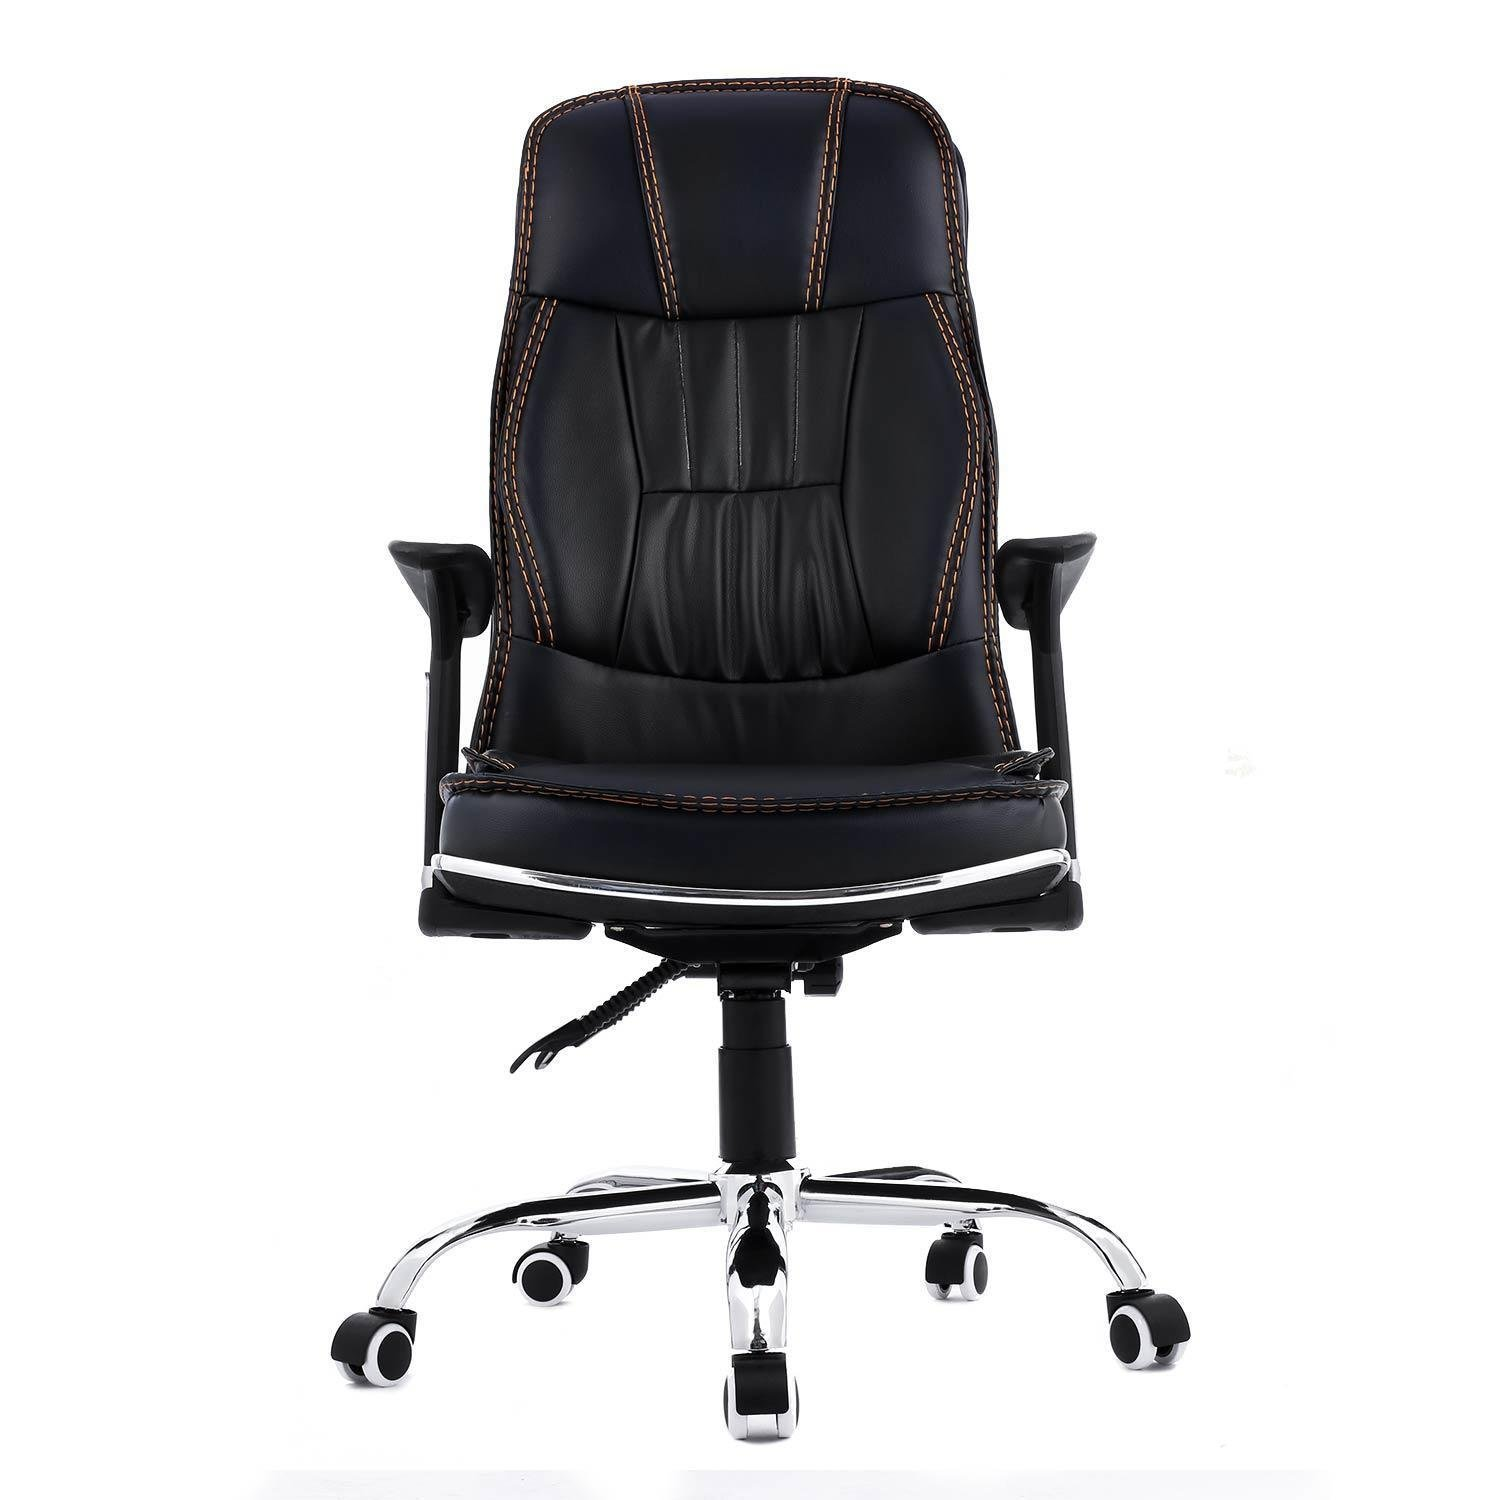 Kaluo Rolling Executive Chair Ergonomic High Back PU Leather Office Chair Adjustable Task Chair Swivel Computer Desk Stool